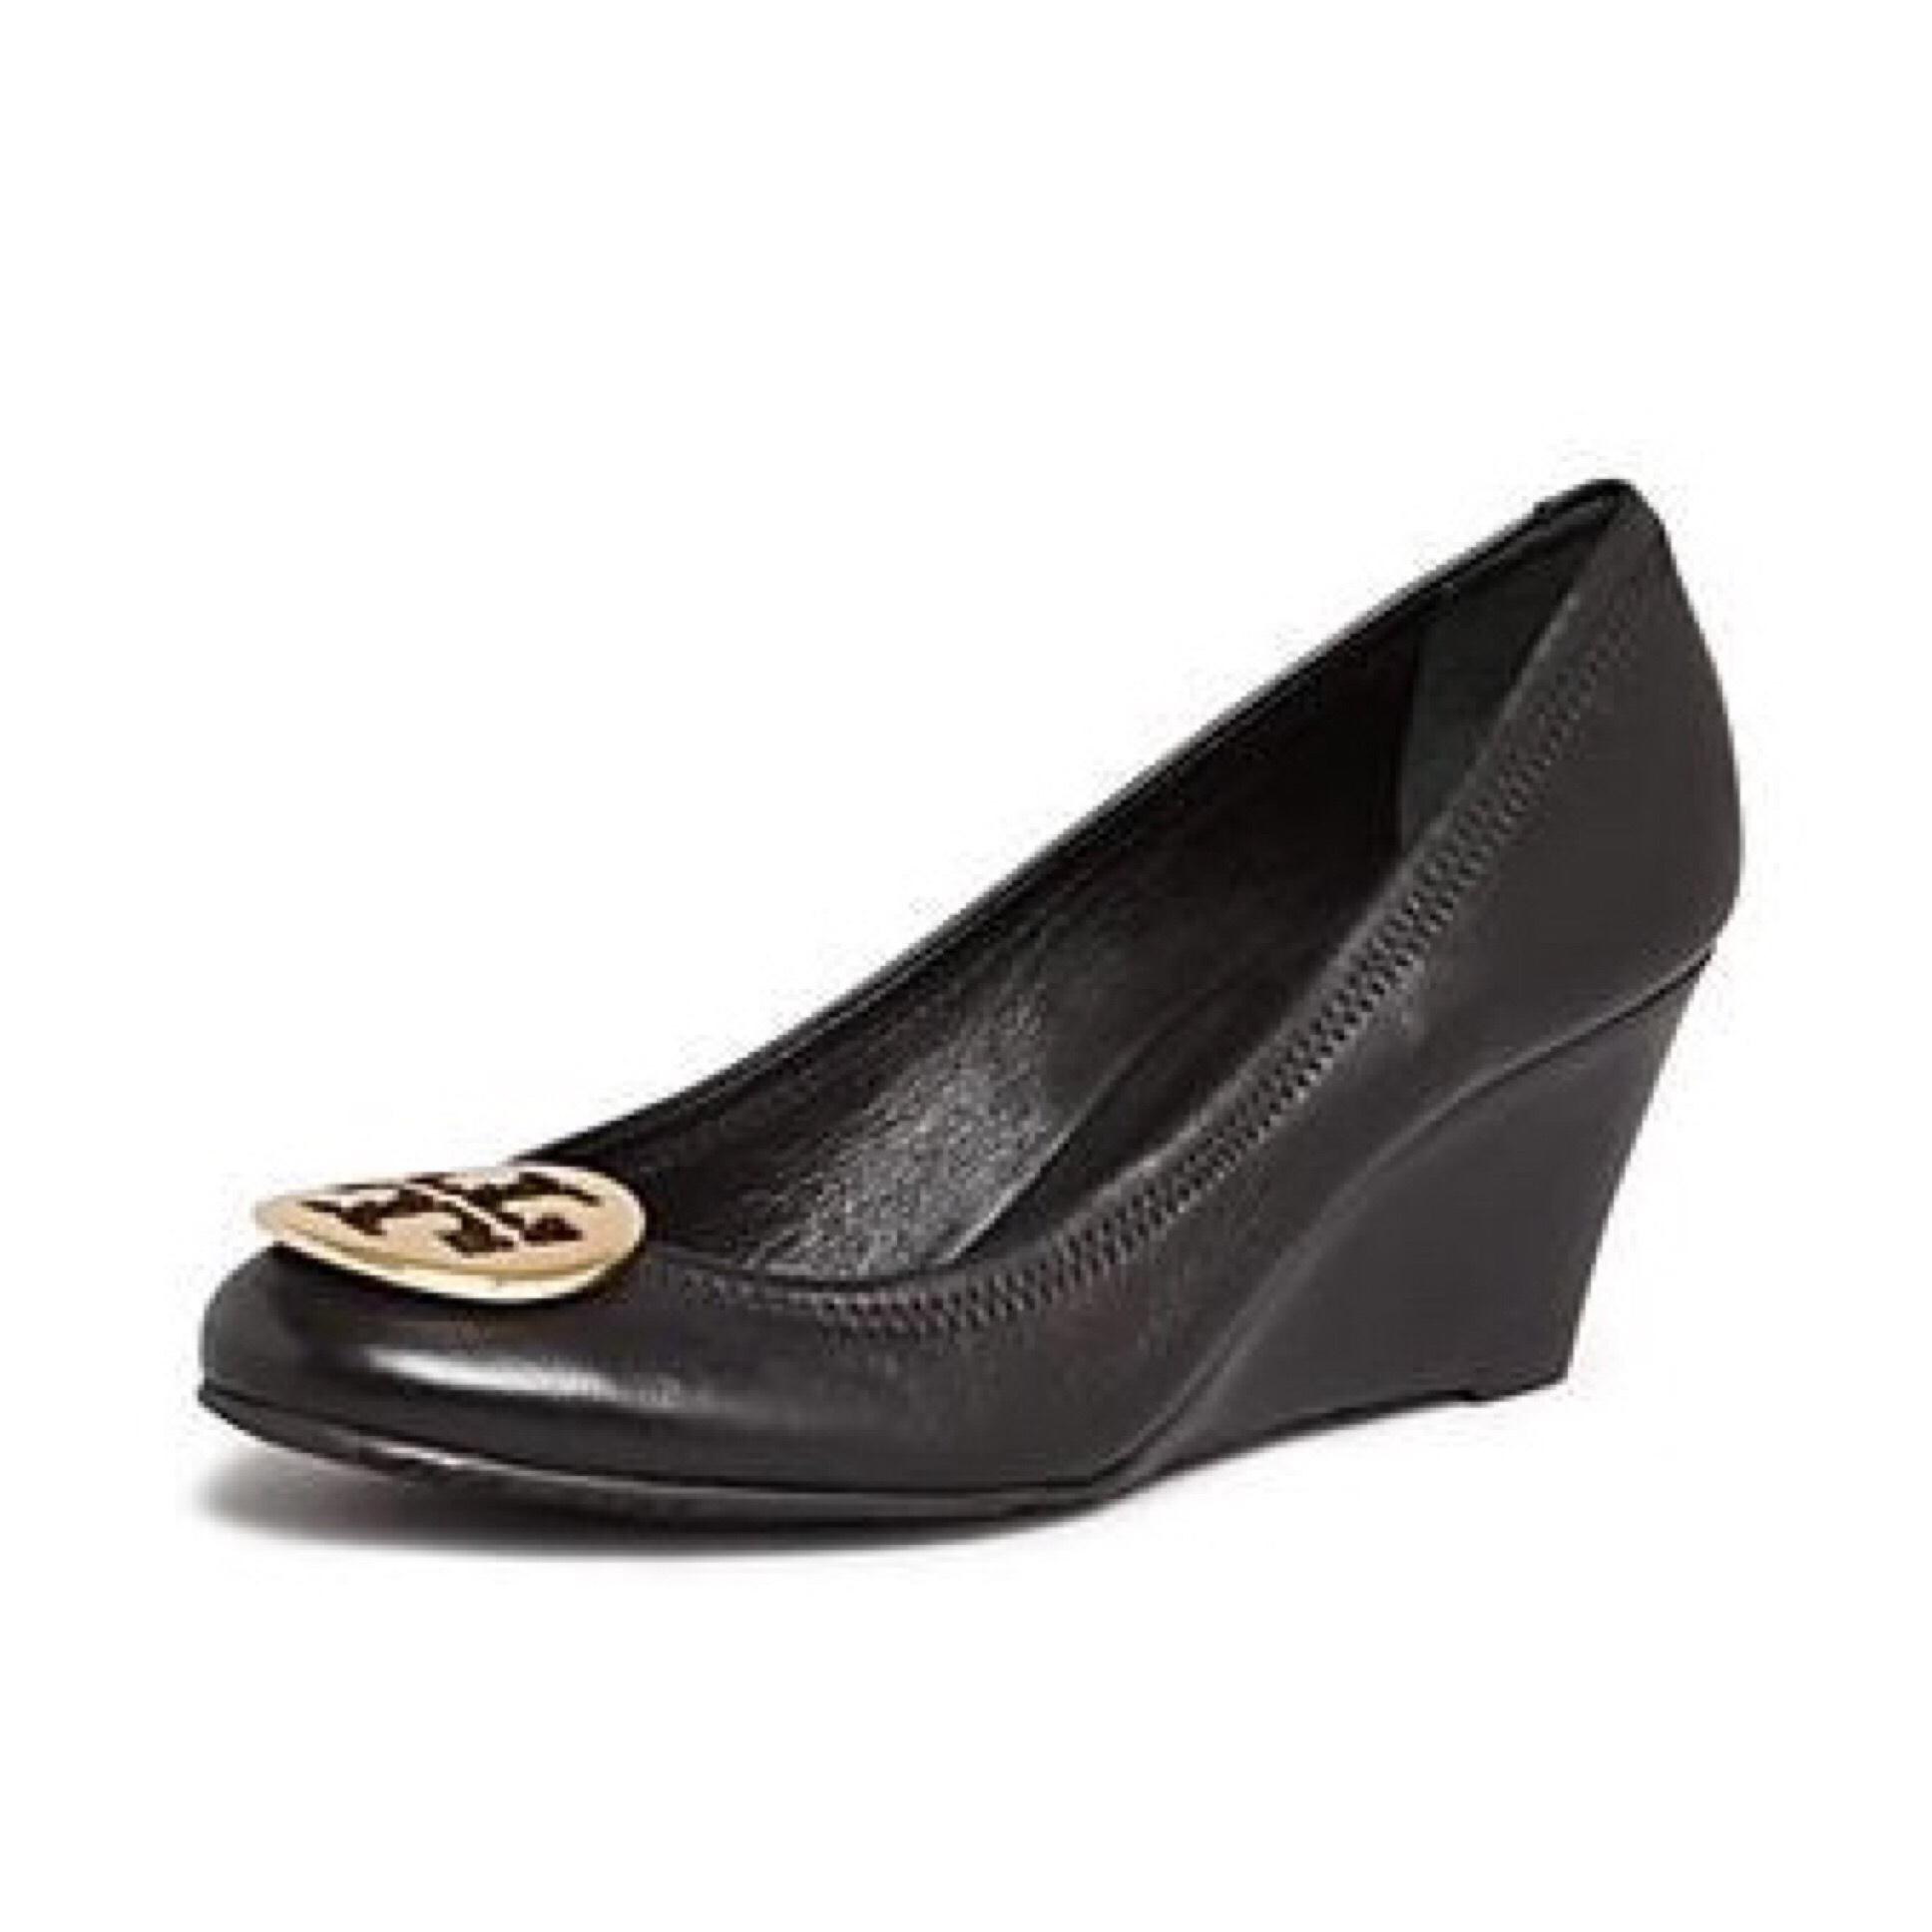 a9fbb2968 Tory Burch Black Sally Leather Pumps Gold Logo Medallion Wedges Wedges  Wedges Size US 10.5 Regular (M